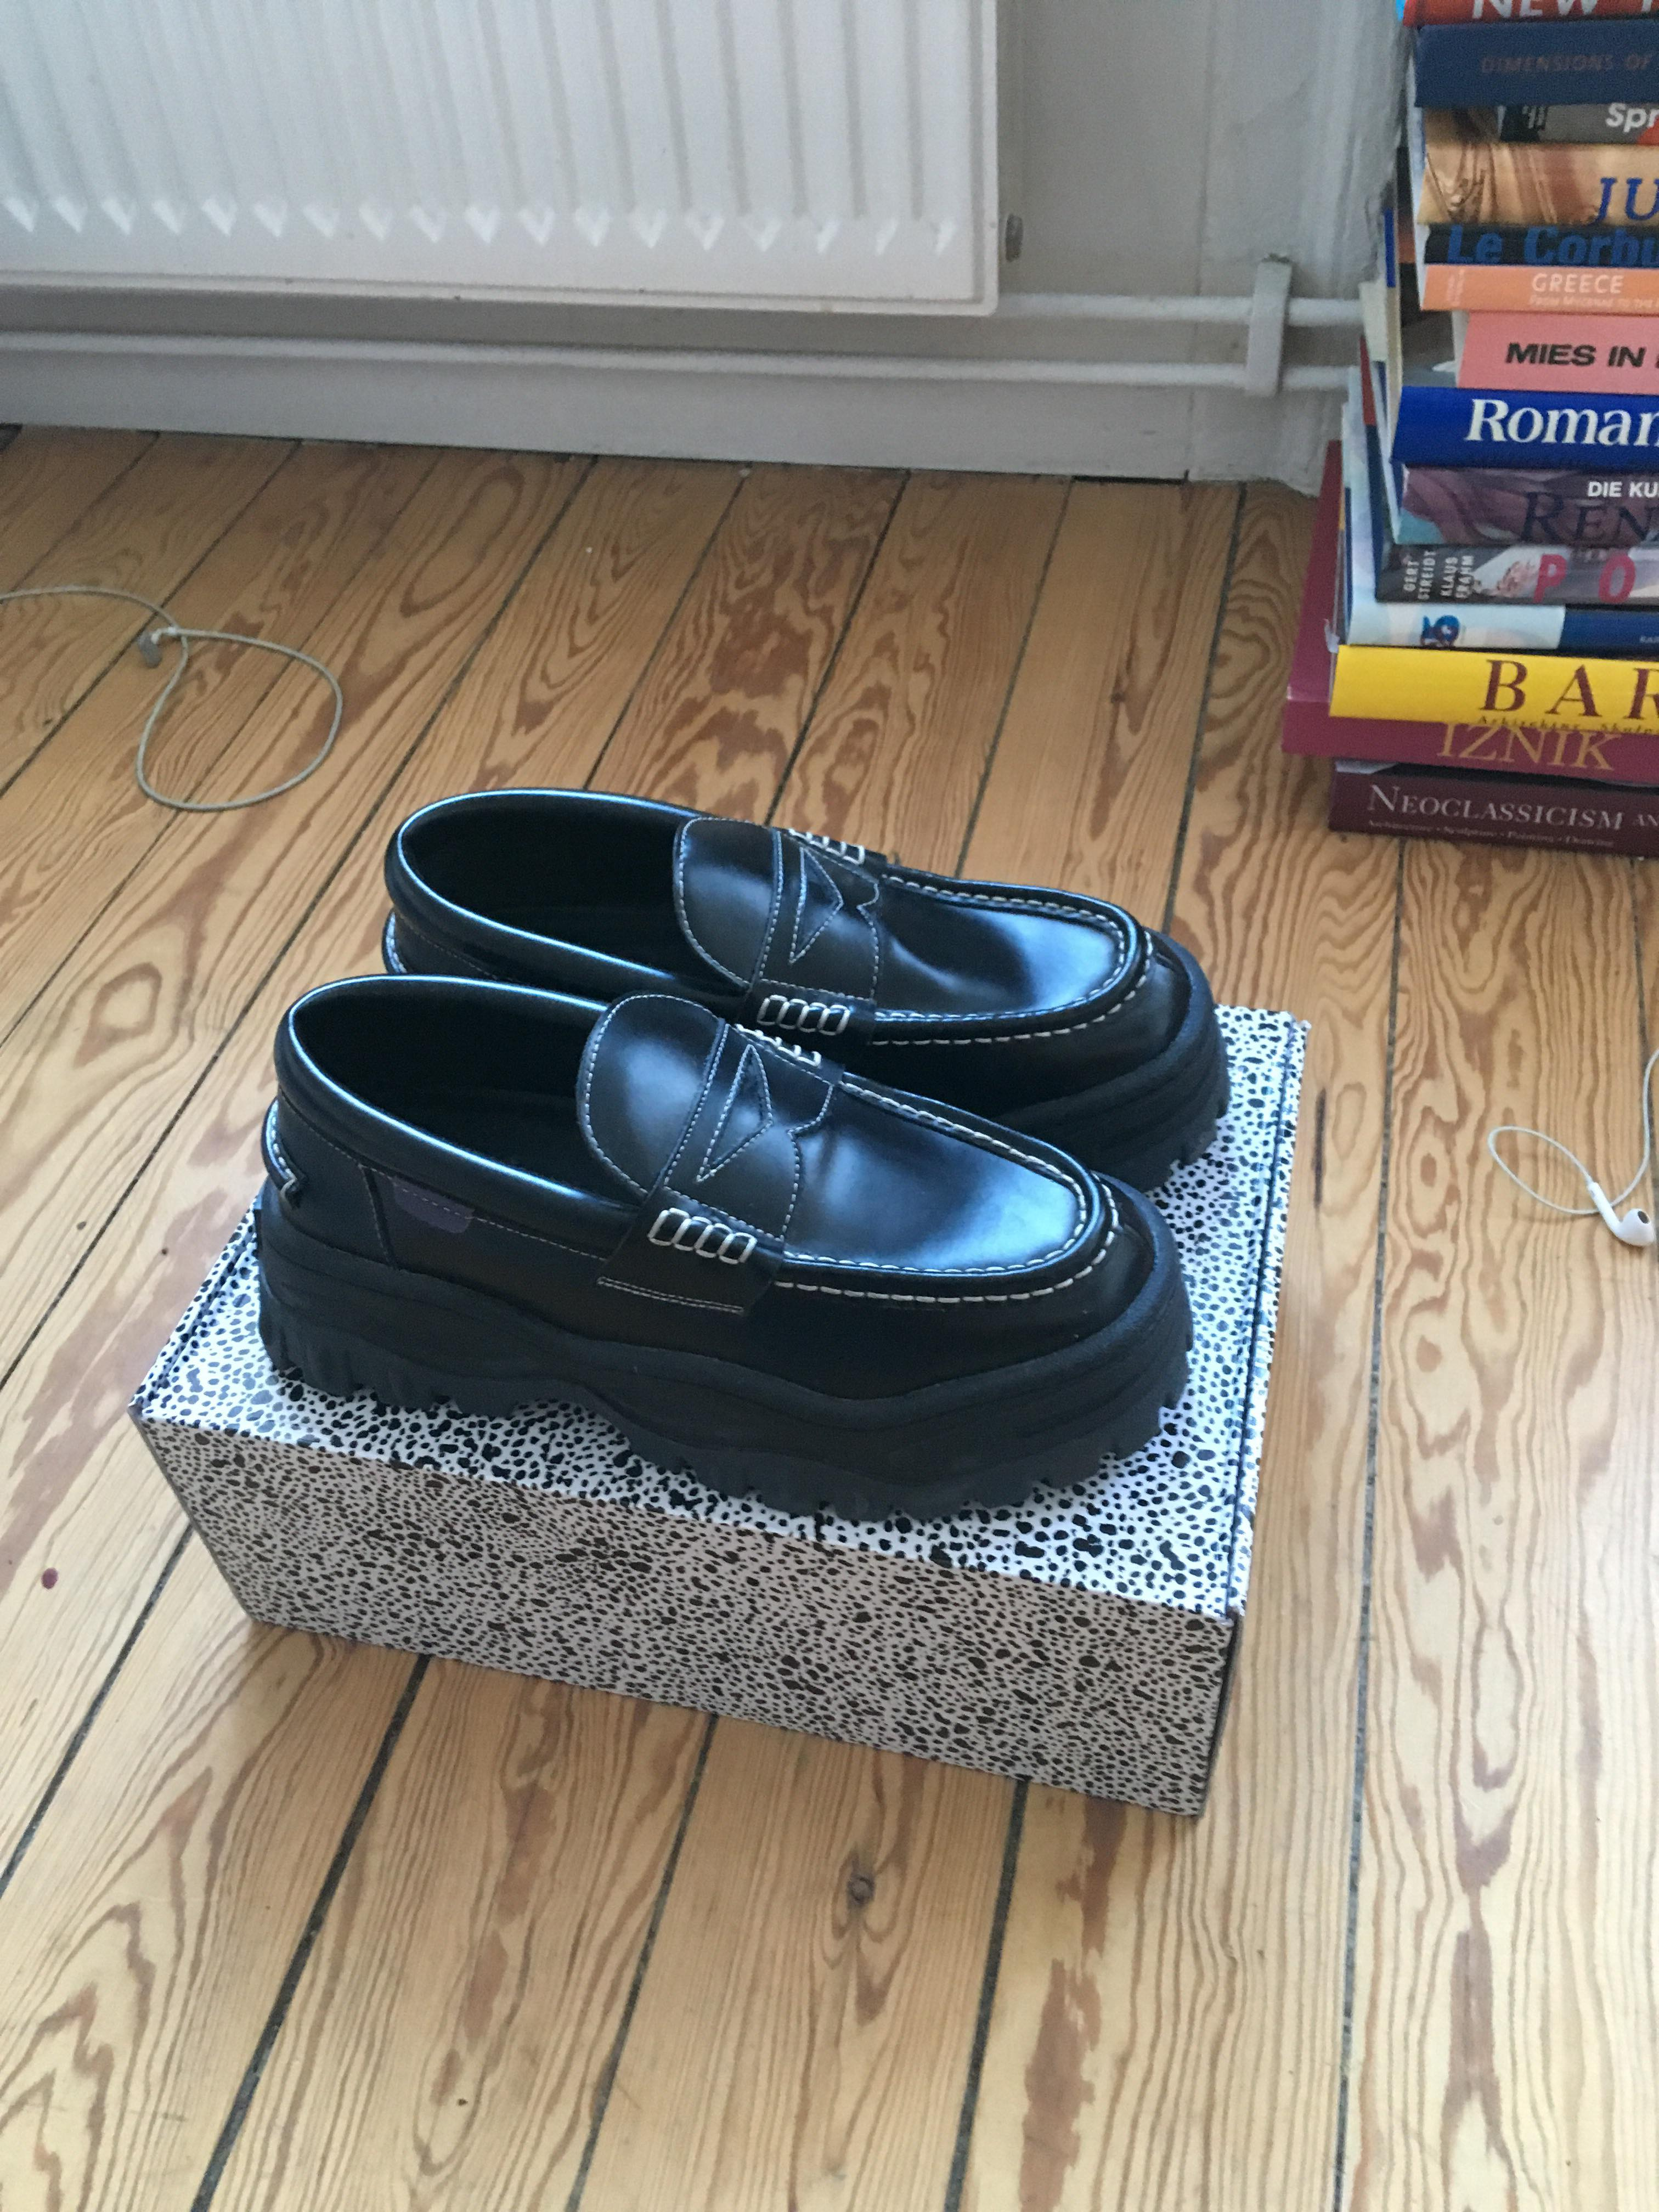 005a69dac11 Eytys Angelo Leather Size 10 - Casual Leather Shoes for Sale - Grailed